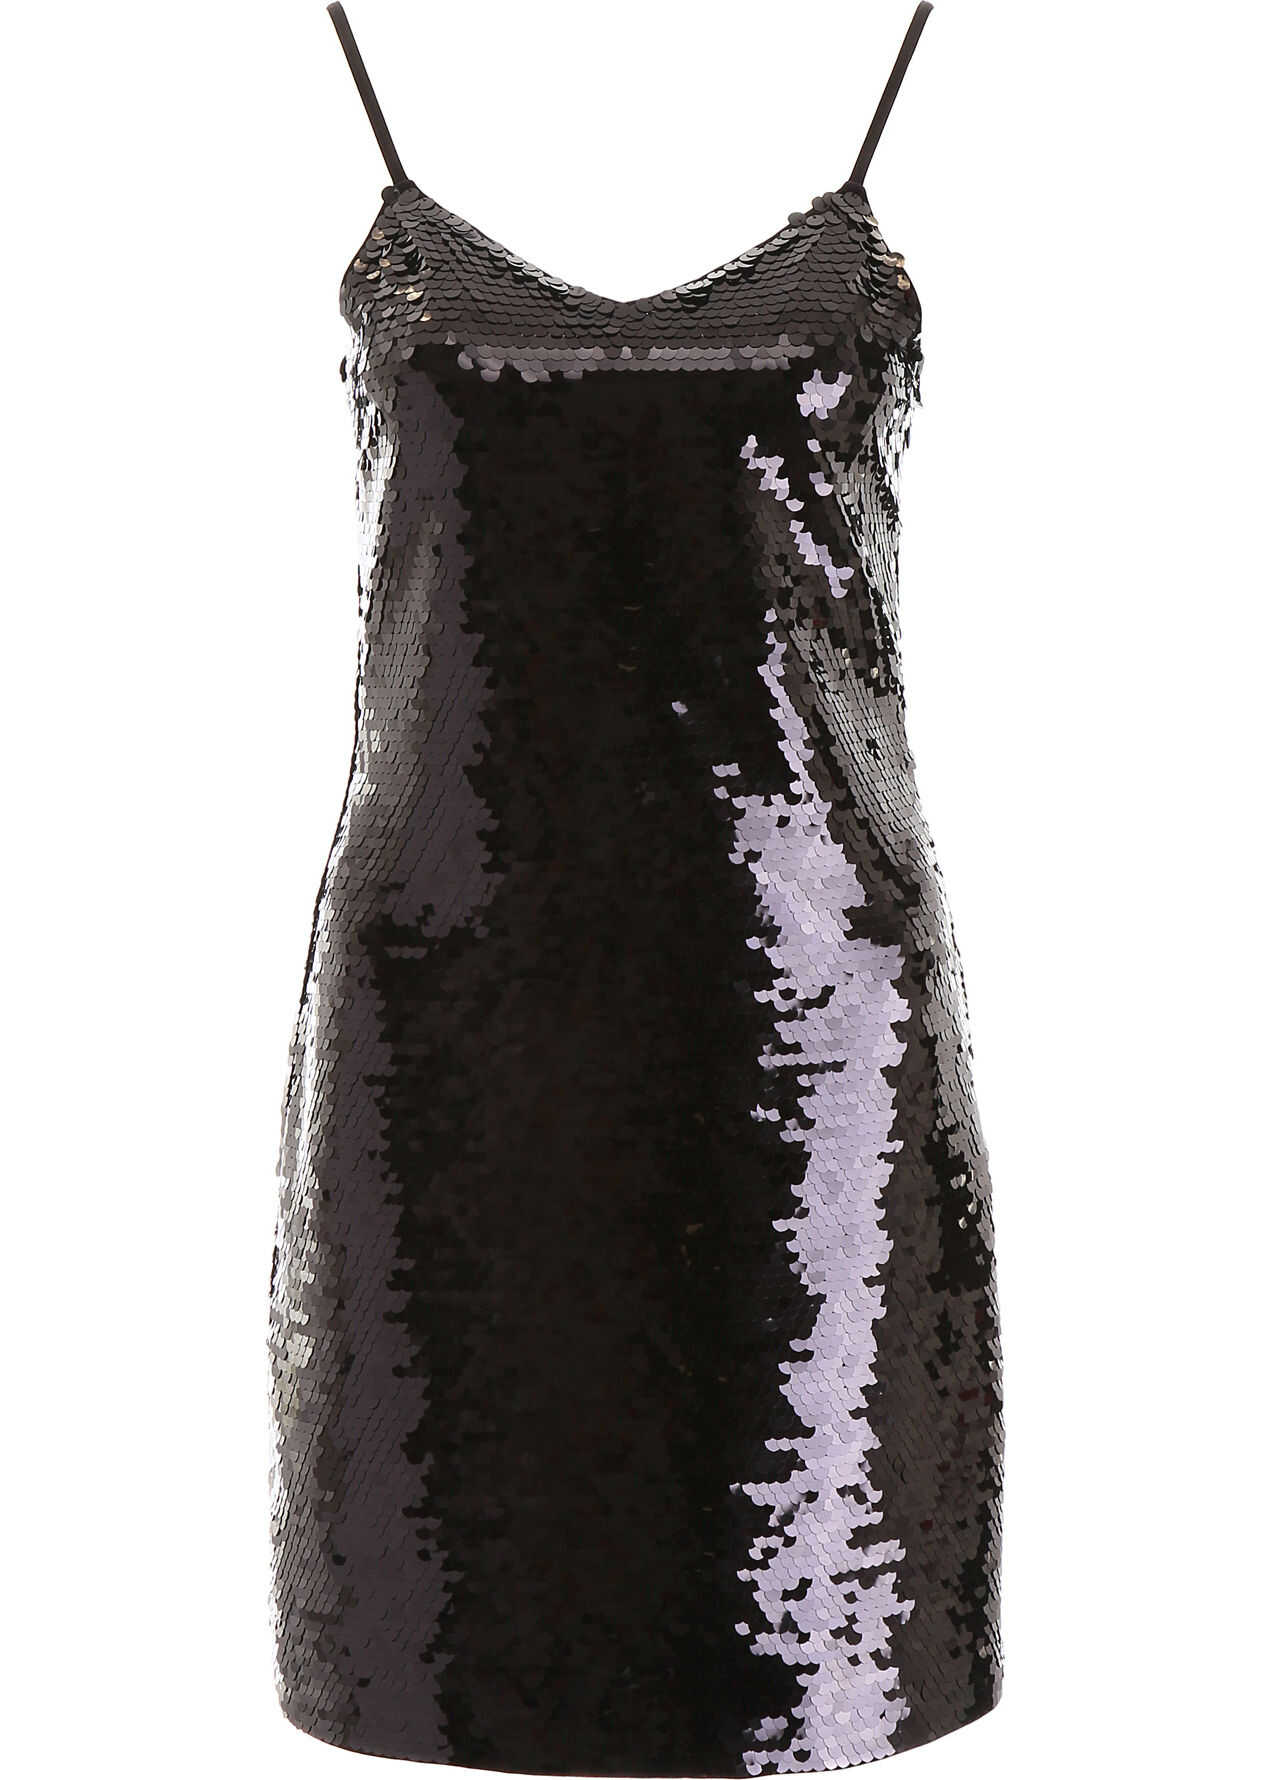 Michael Kors Sequins Mini Dress BLACK